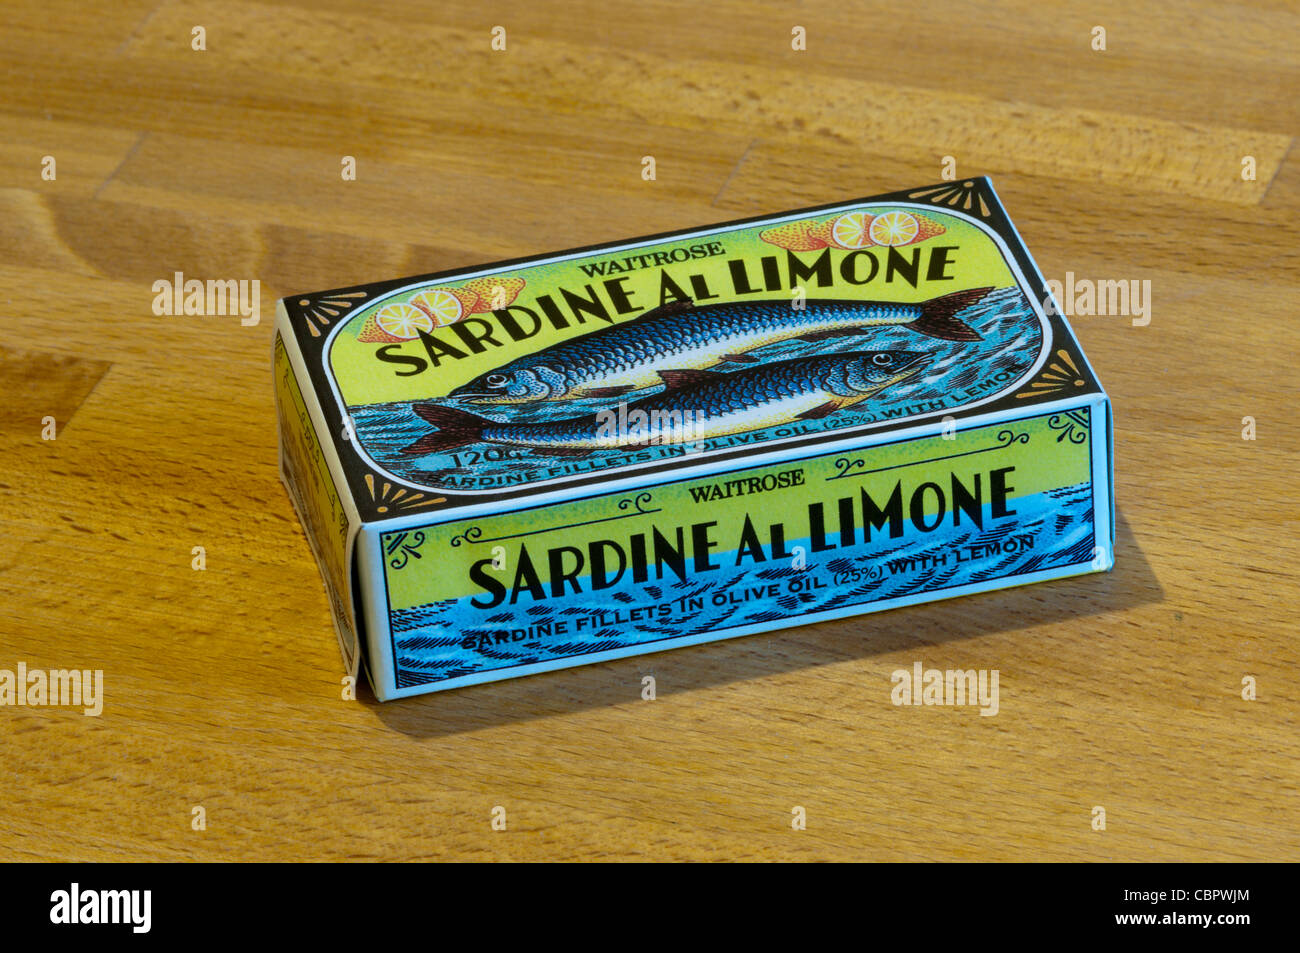 An unopened tin of Waitrose Sardine Al Limone - sardine fillets in olive oil with lemon. Stock Photo